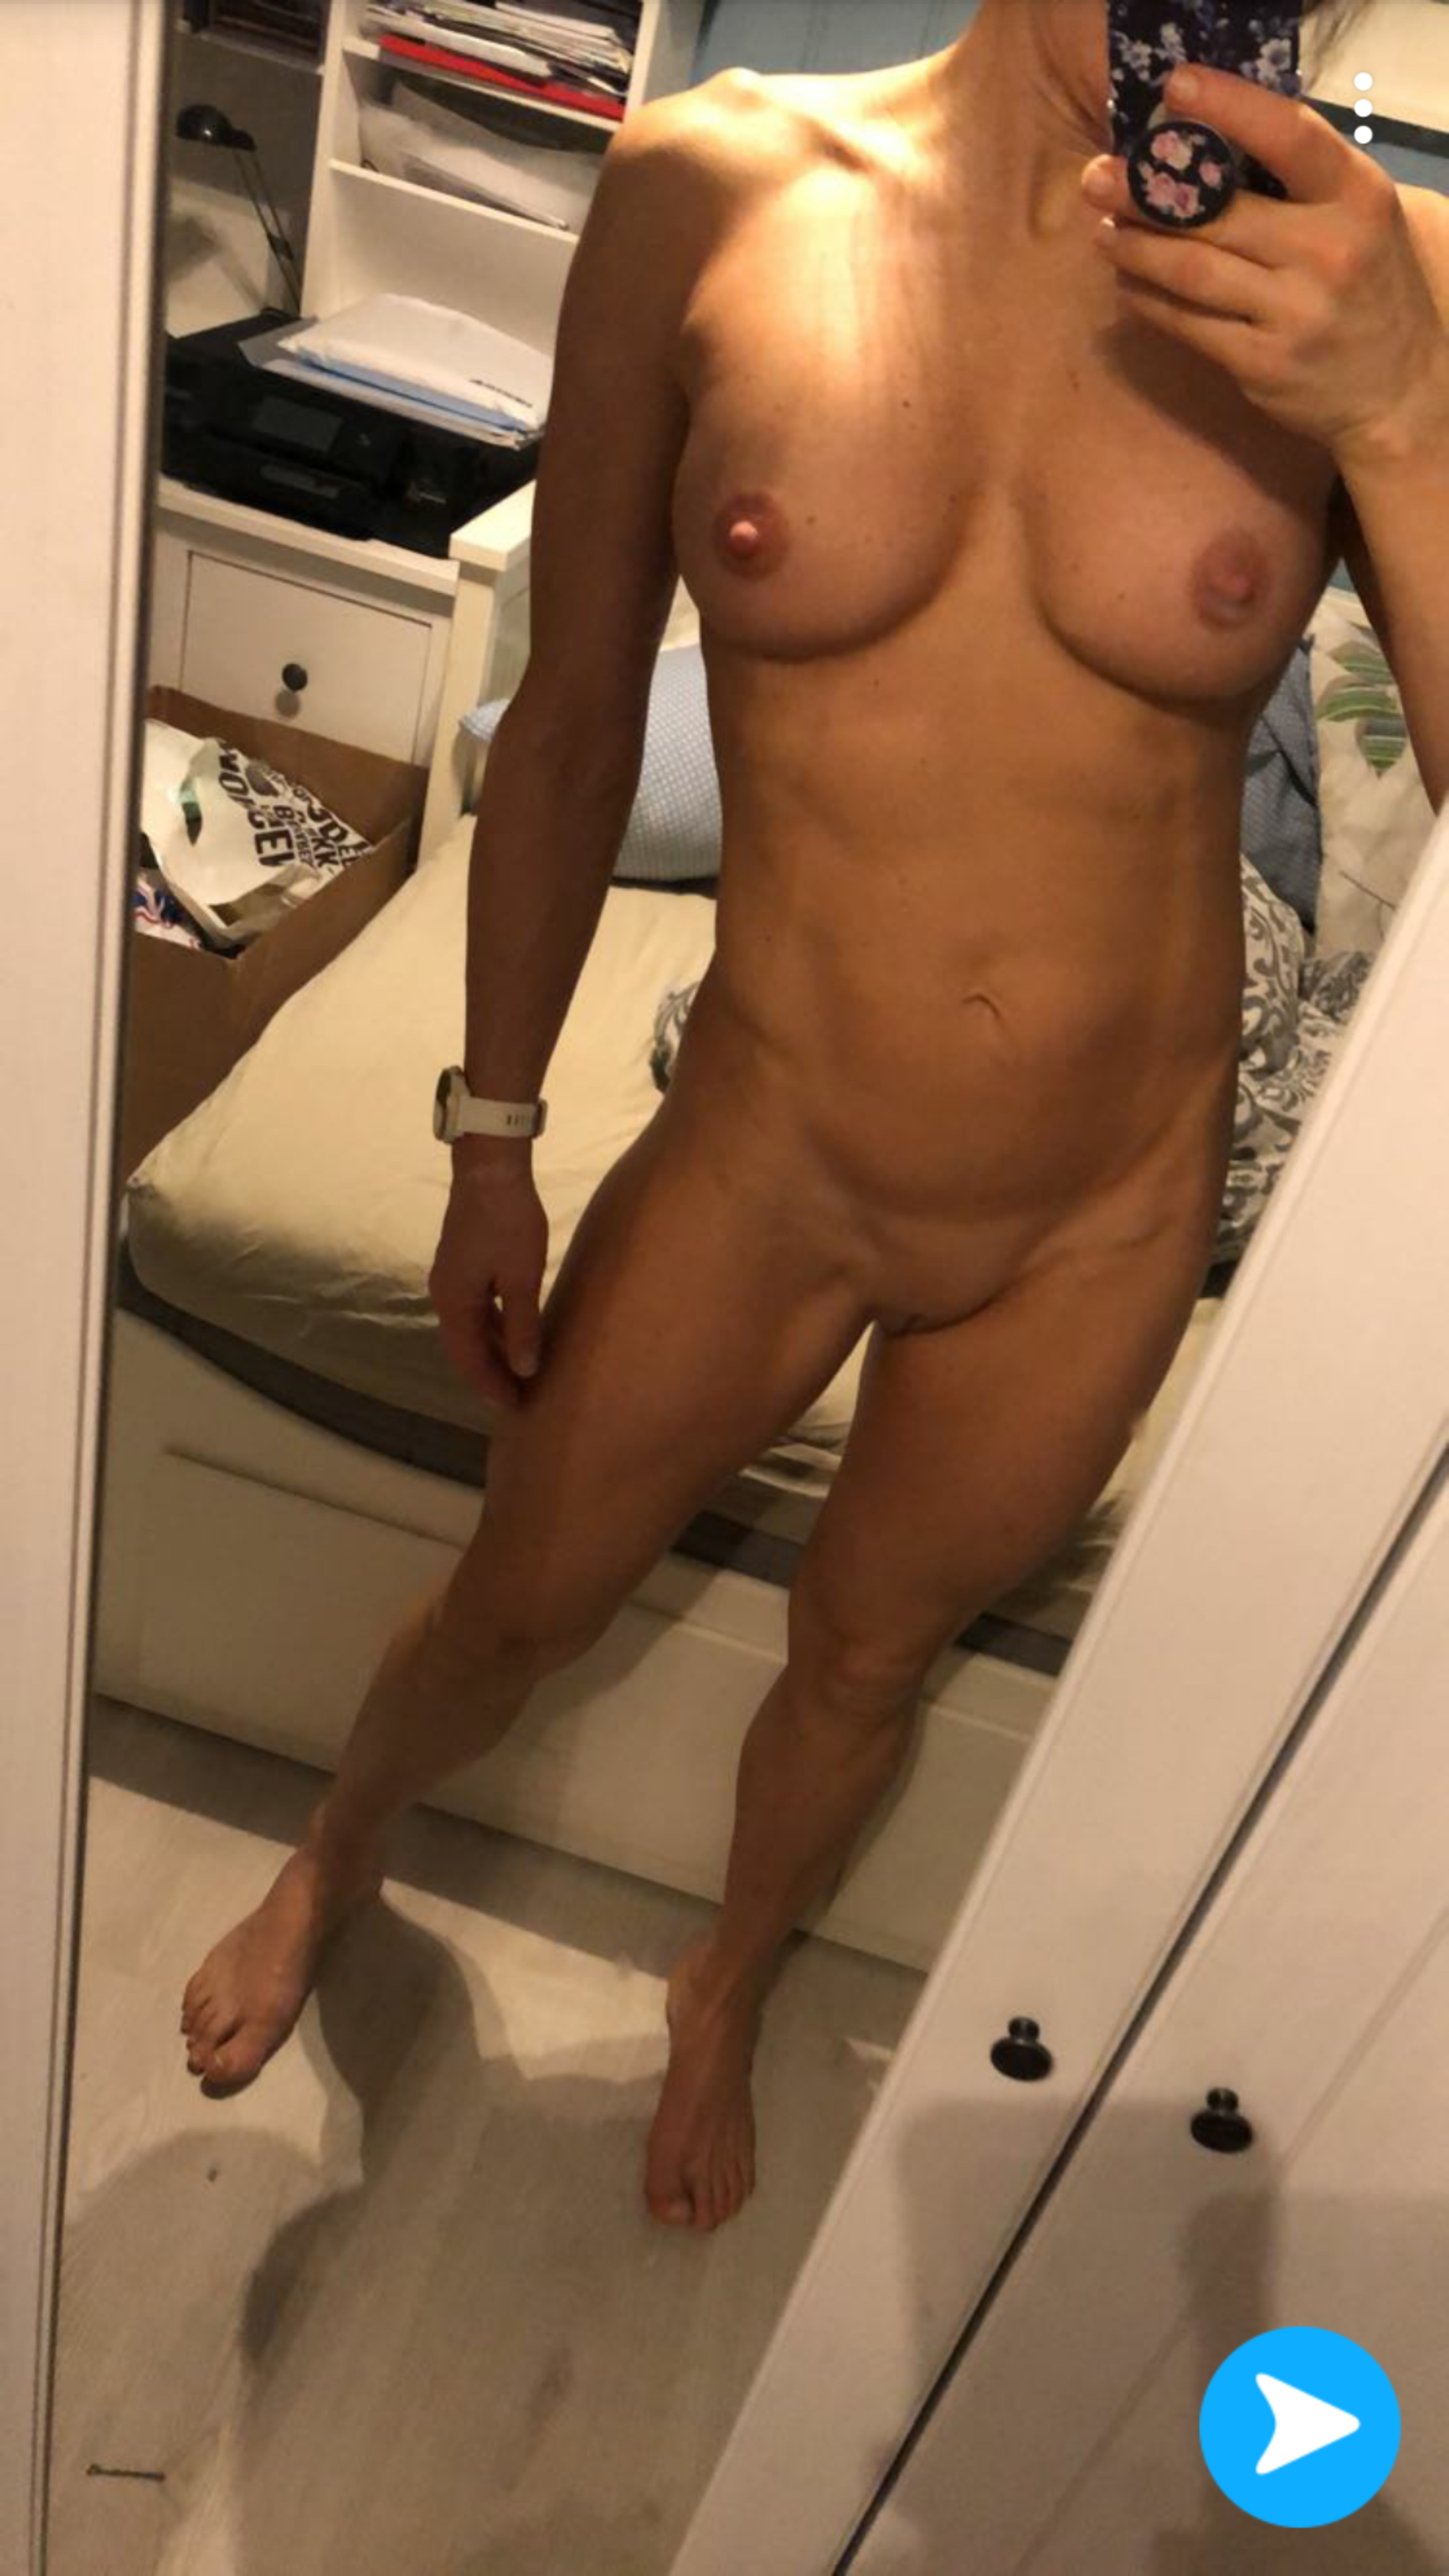 Private Pictures Leaked photo 25